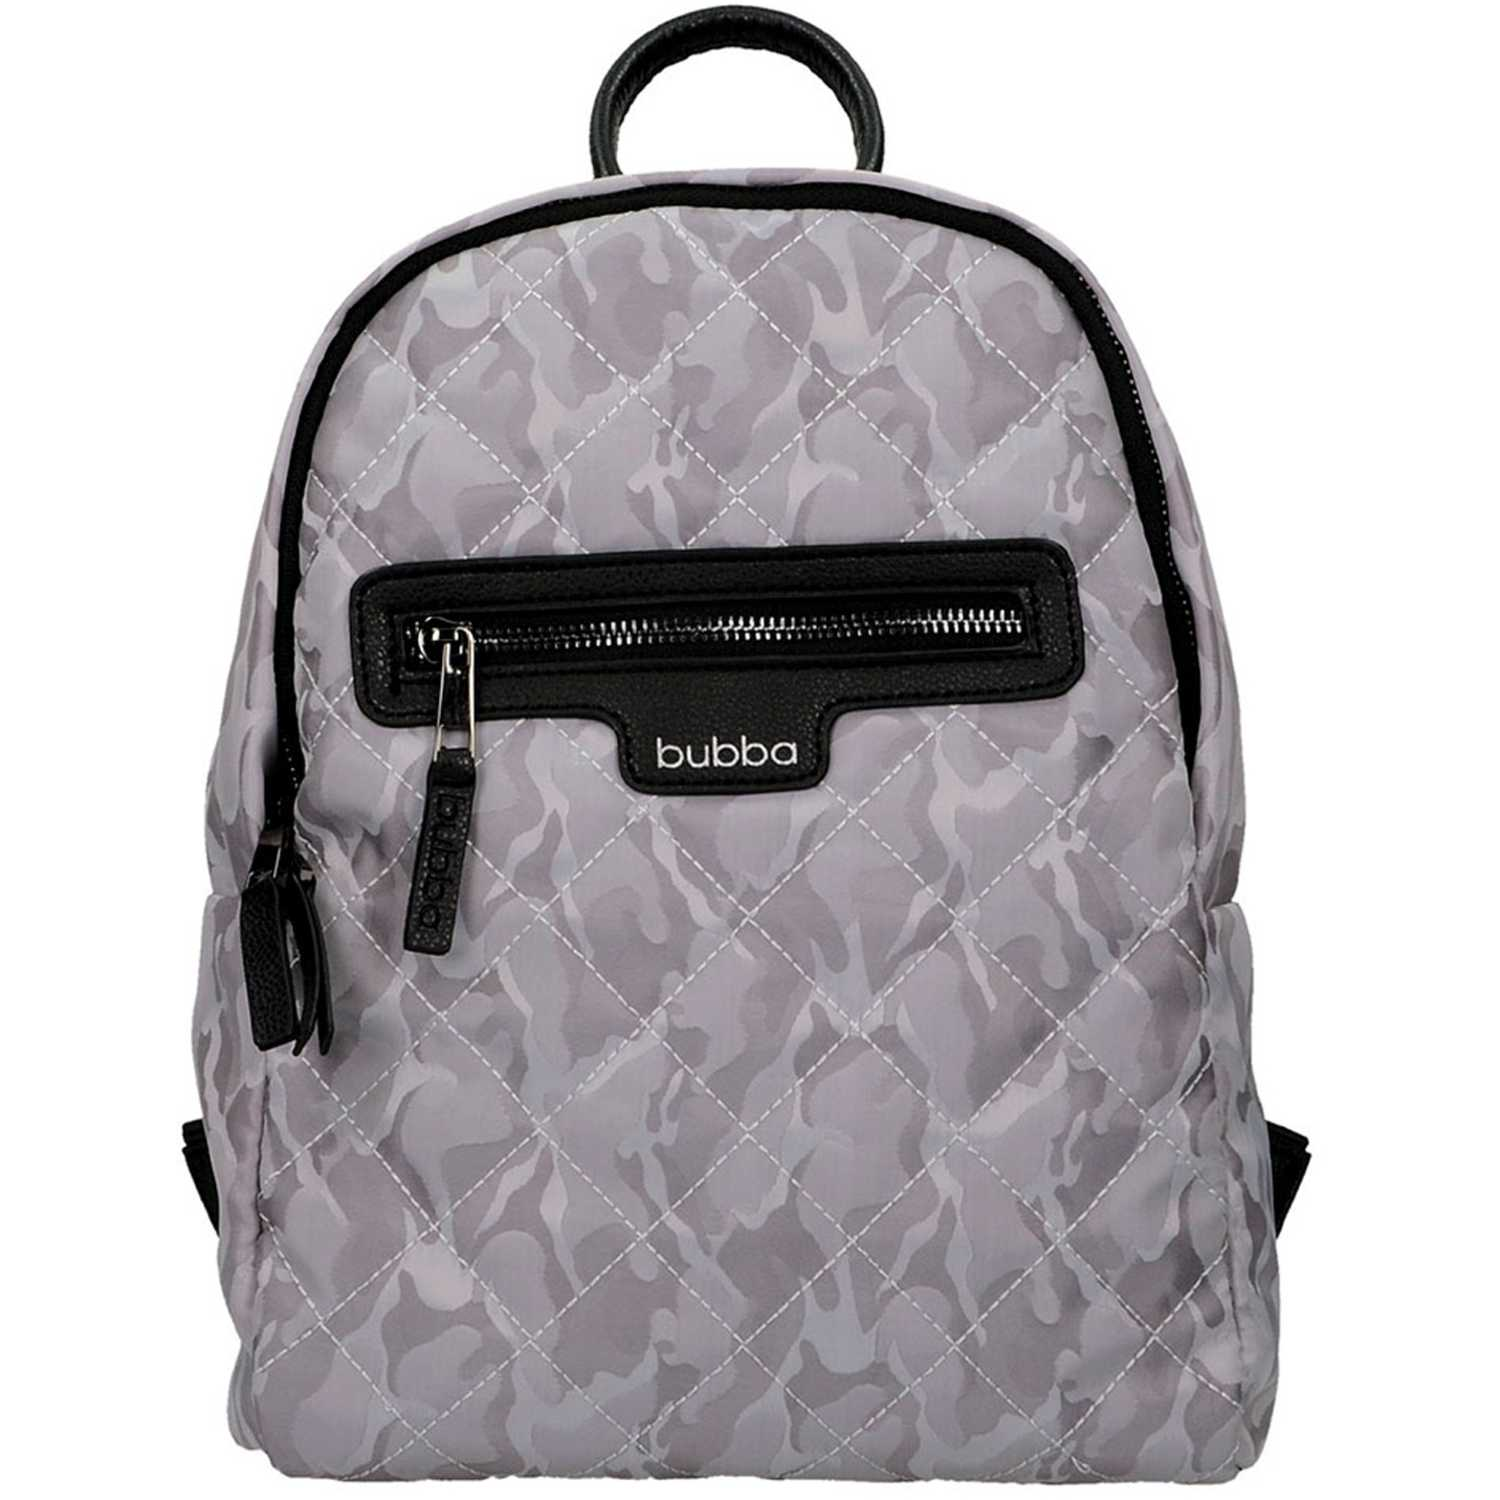 BUBBA Mochila Bubba Glam REGULAR Gris / negro Mochilas Multipropósitos